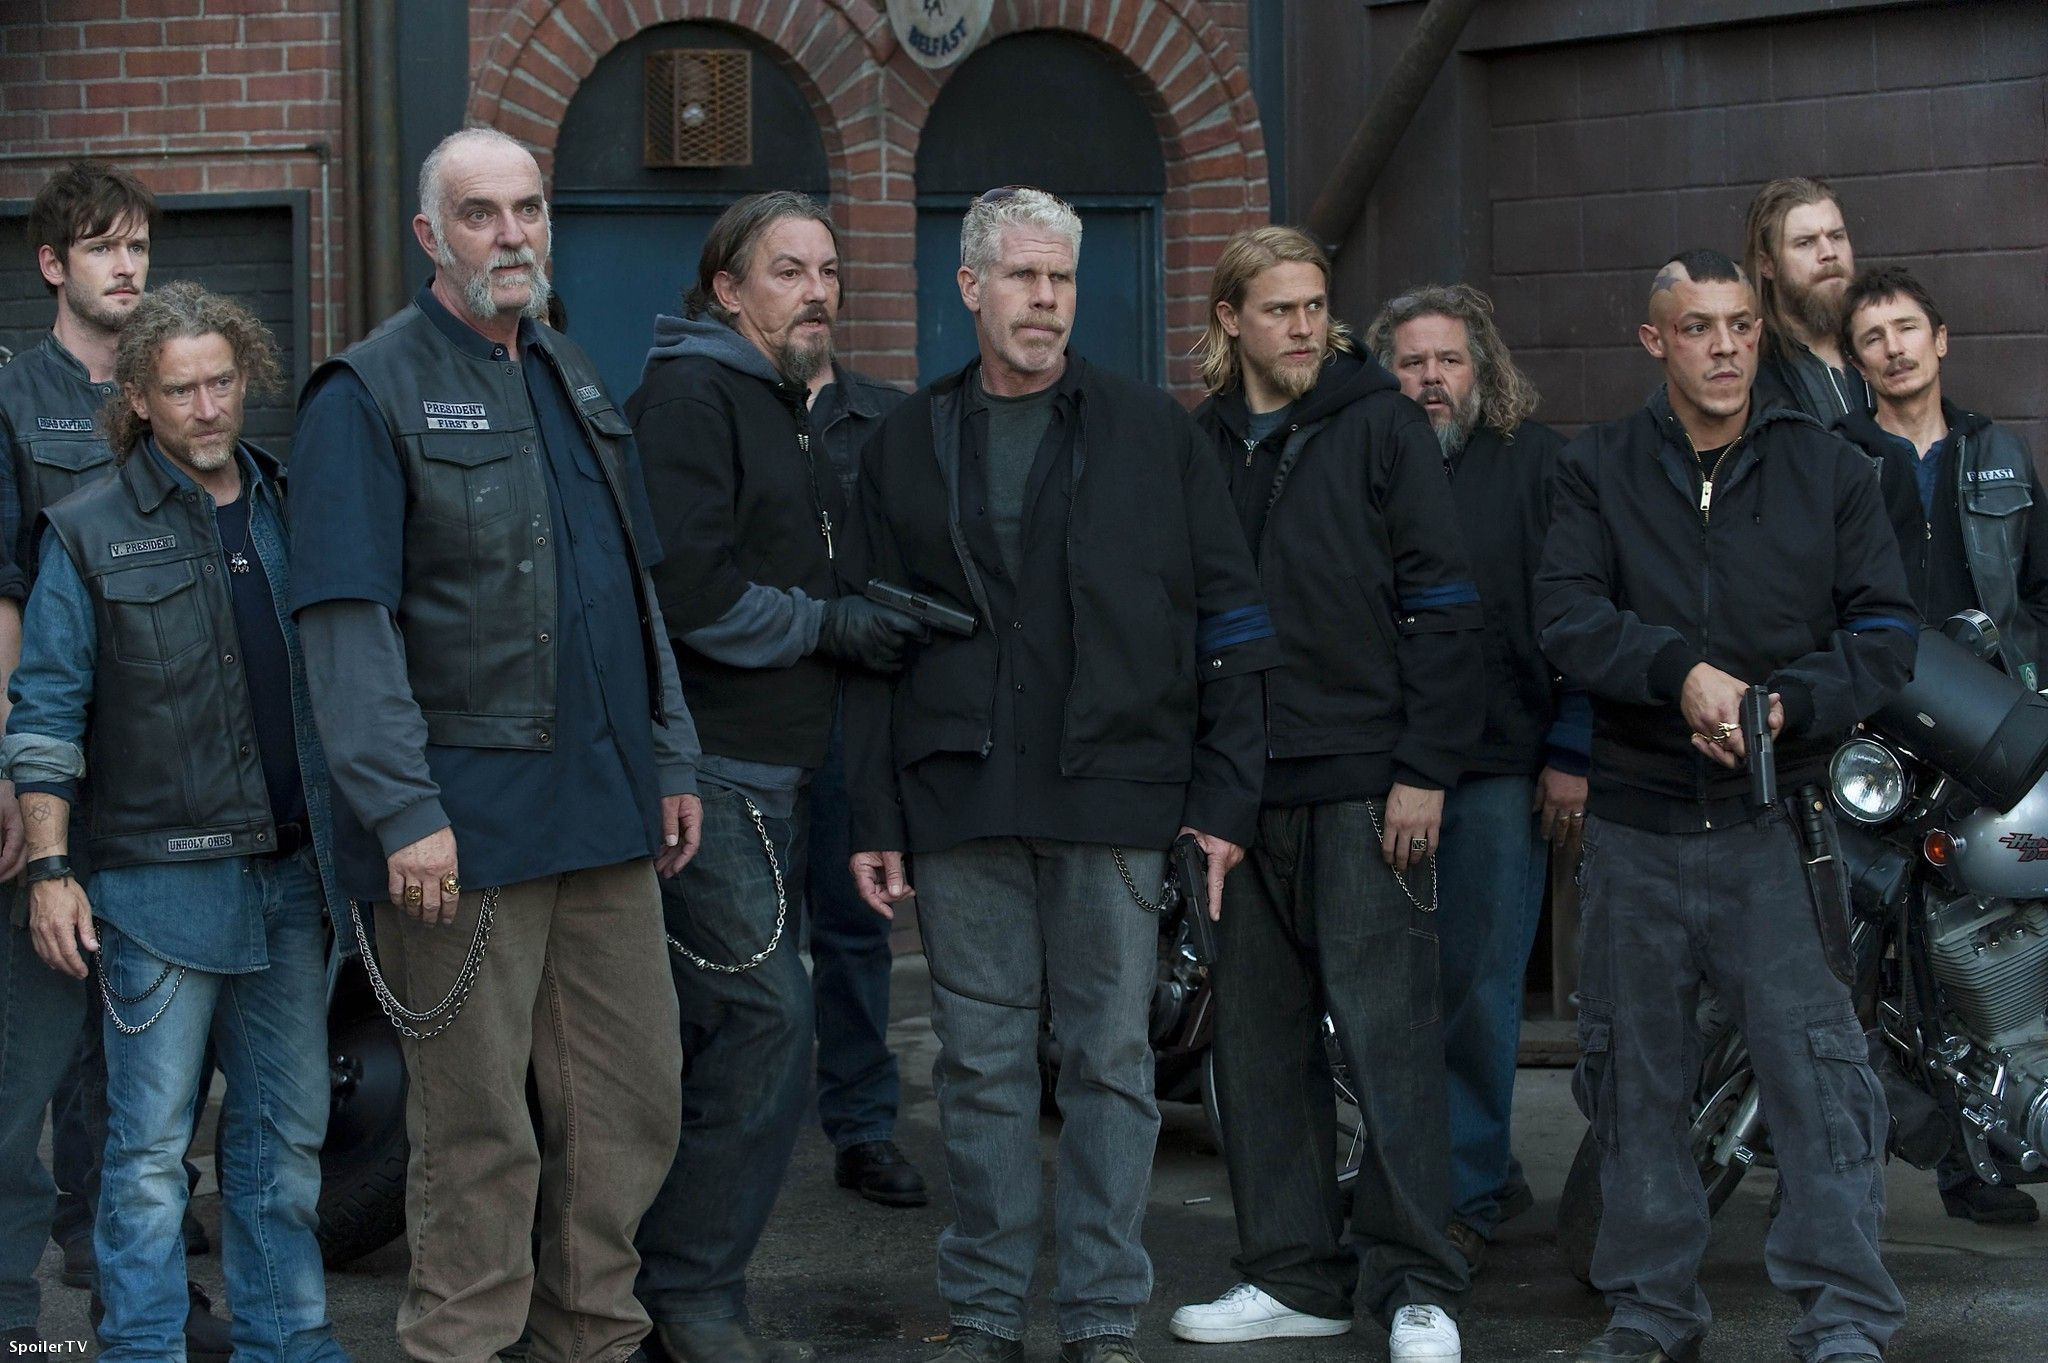 Sons Of Anarchy Cast Sons Of Anarchy Anarchy Sons Of Anarchy Cast